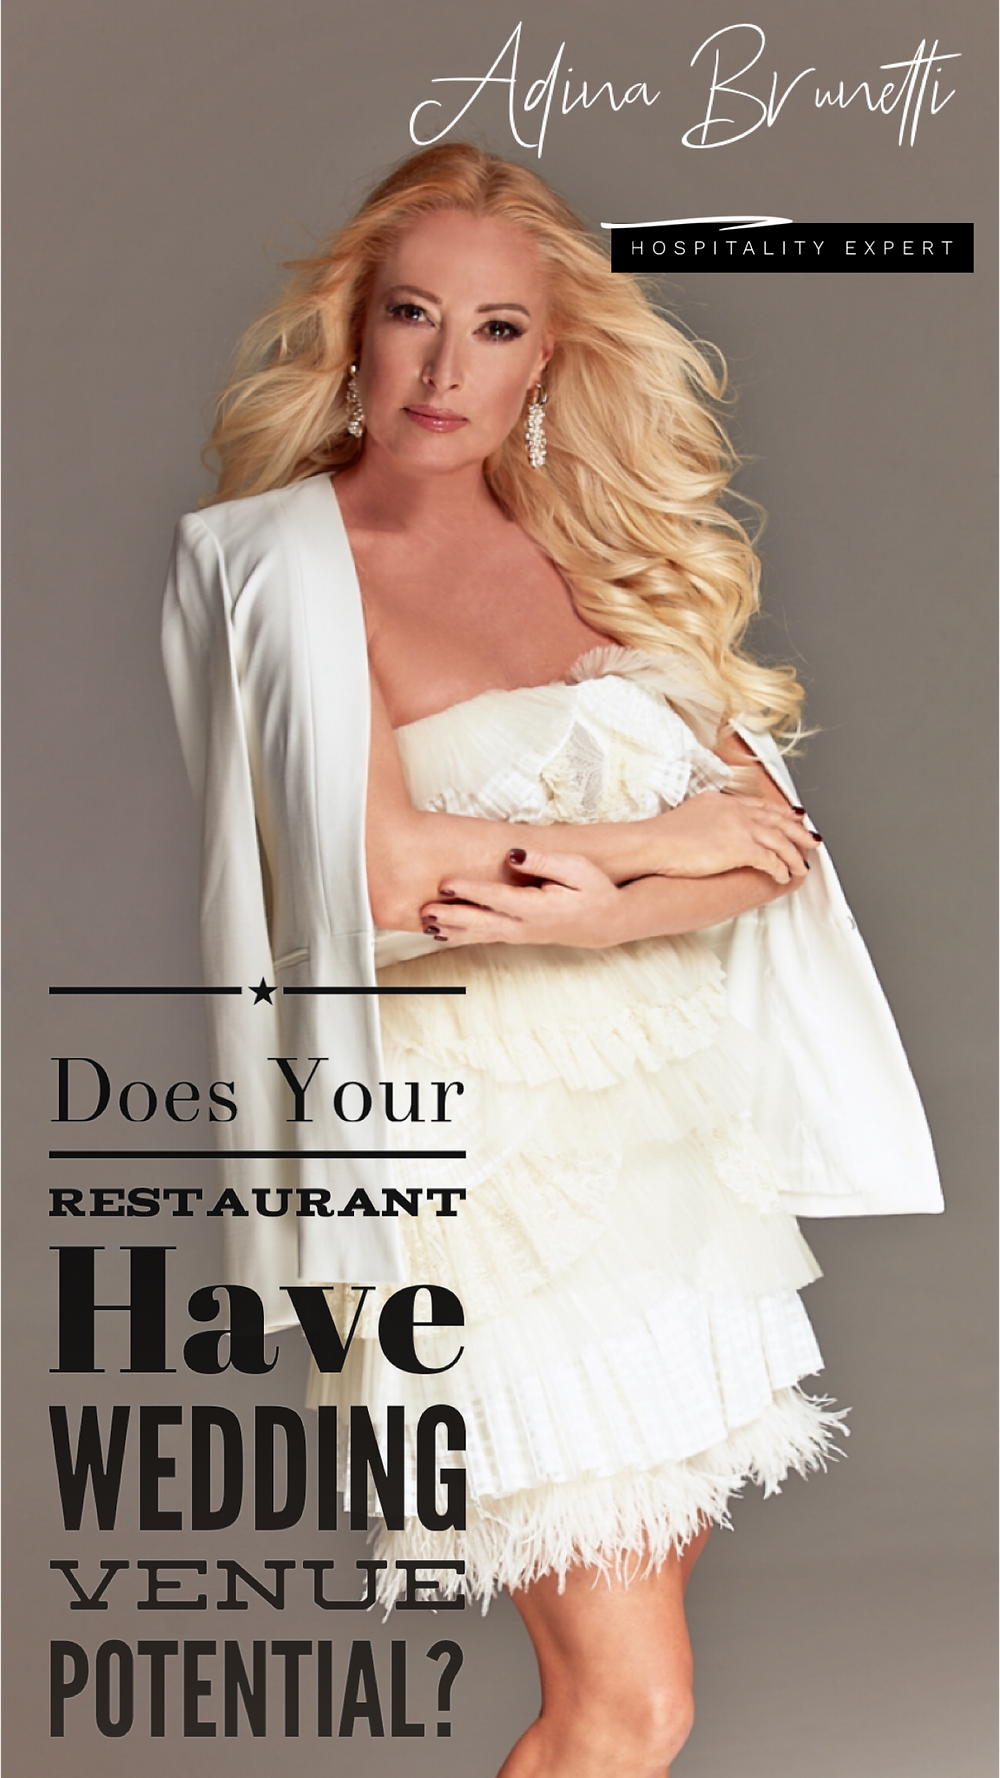 Adina Brunetti: Does Your Restaurant Have Wedding Venue Potential?